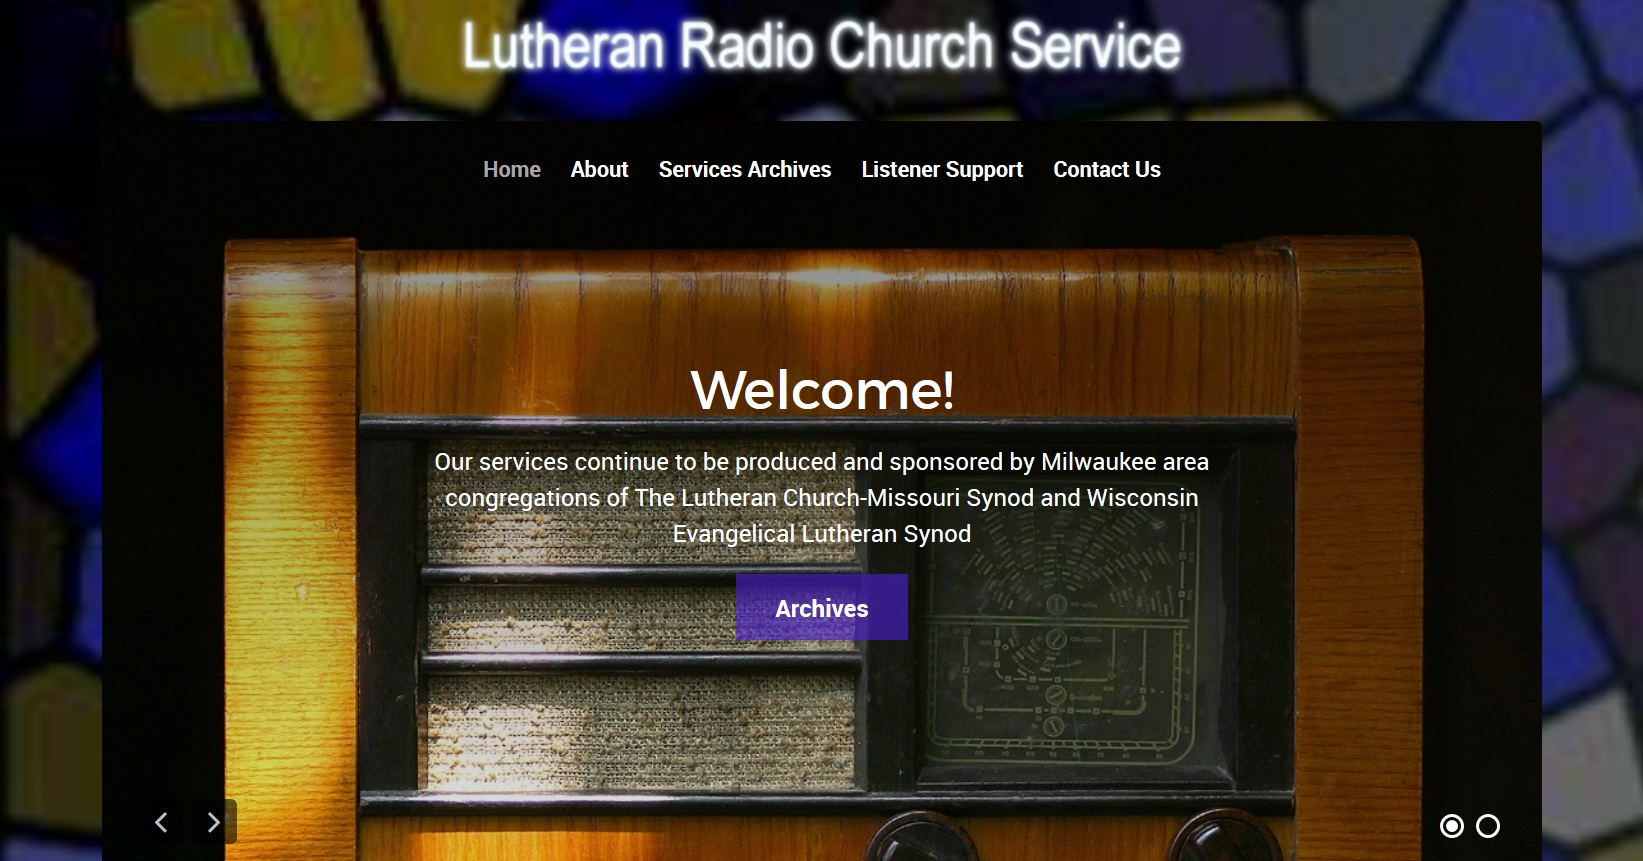 Lutheran Radio Church Service